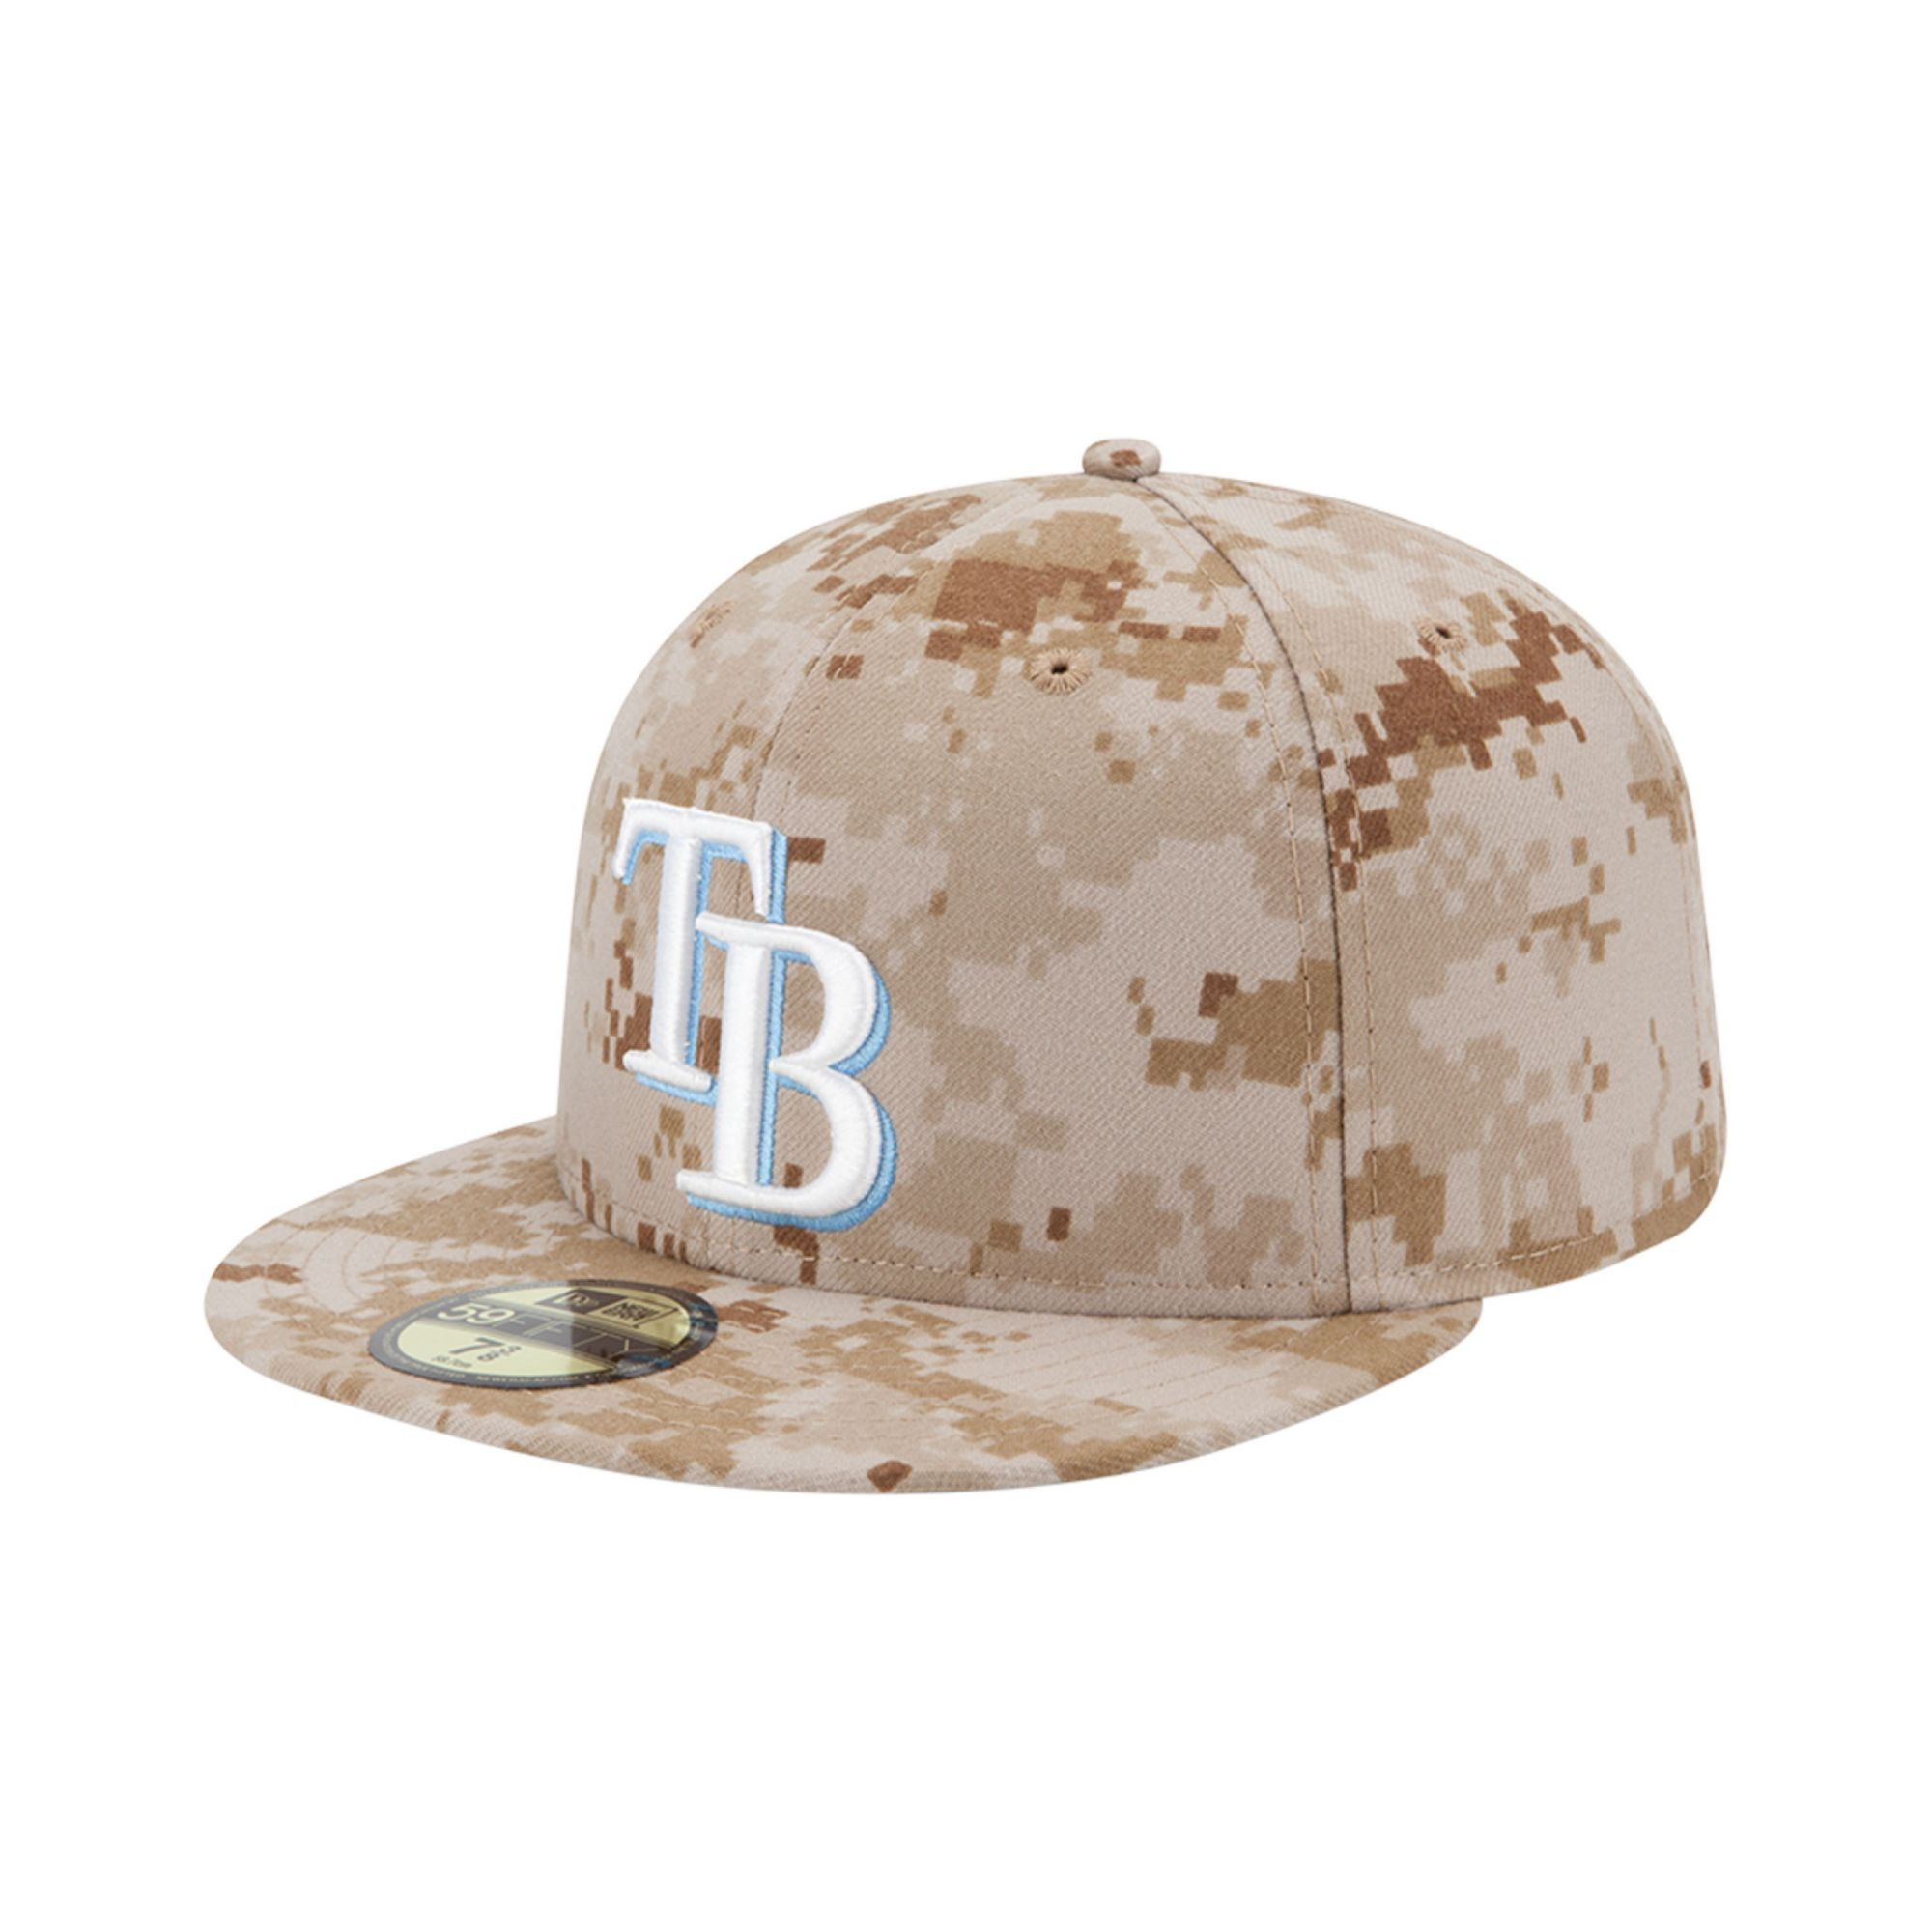 online store caefb 13454 KTZ Tampa Bay Rays Mlb Memorial Day Stars Stripes 59fifty Cap in ...